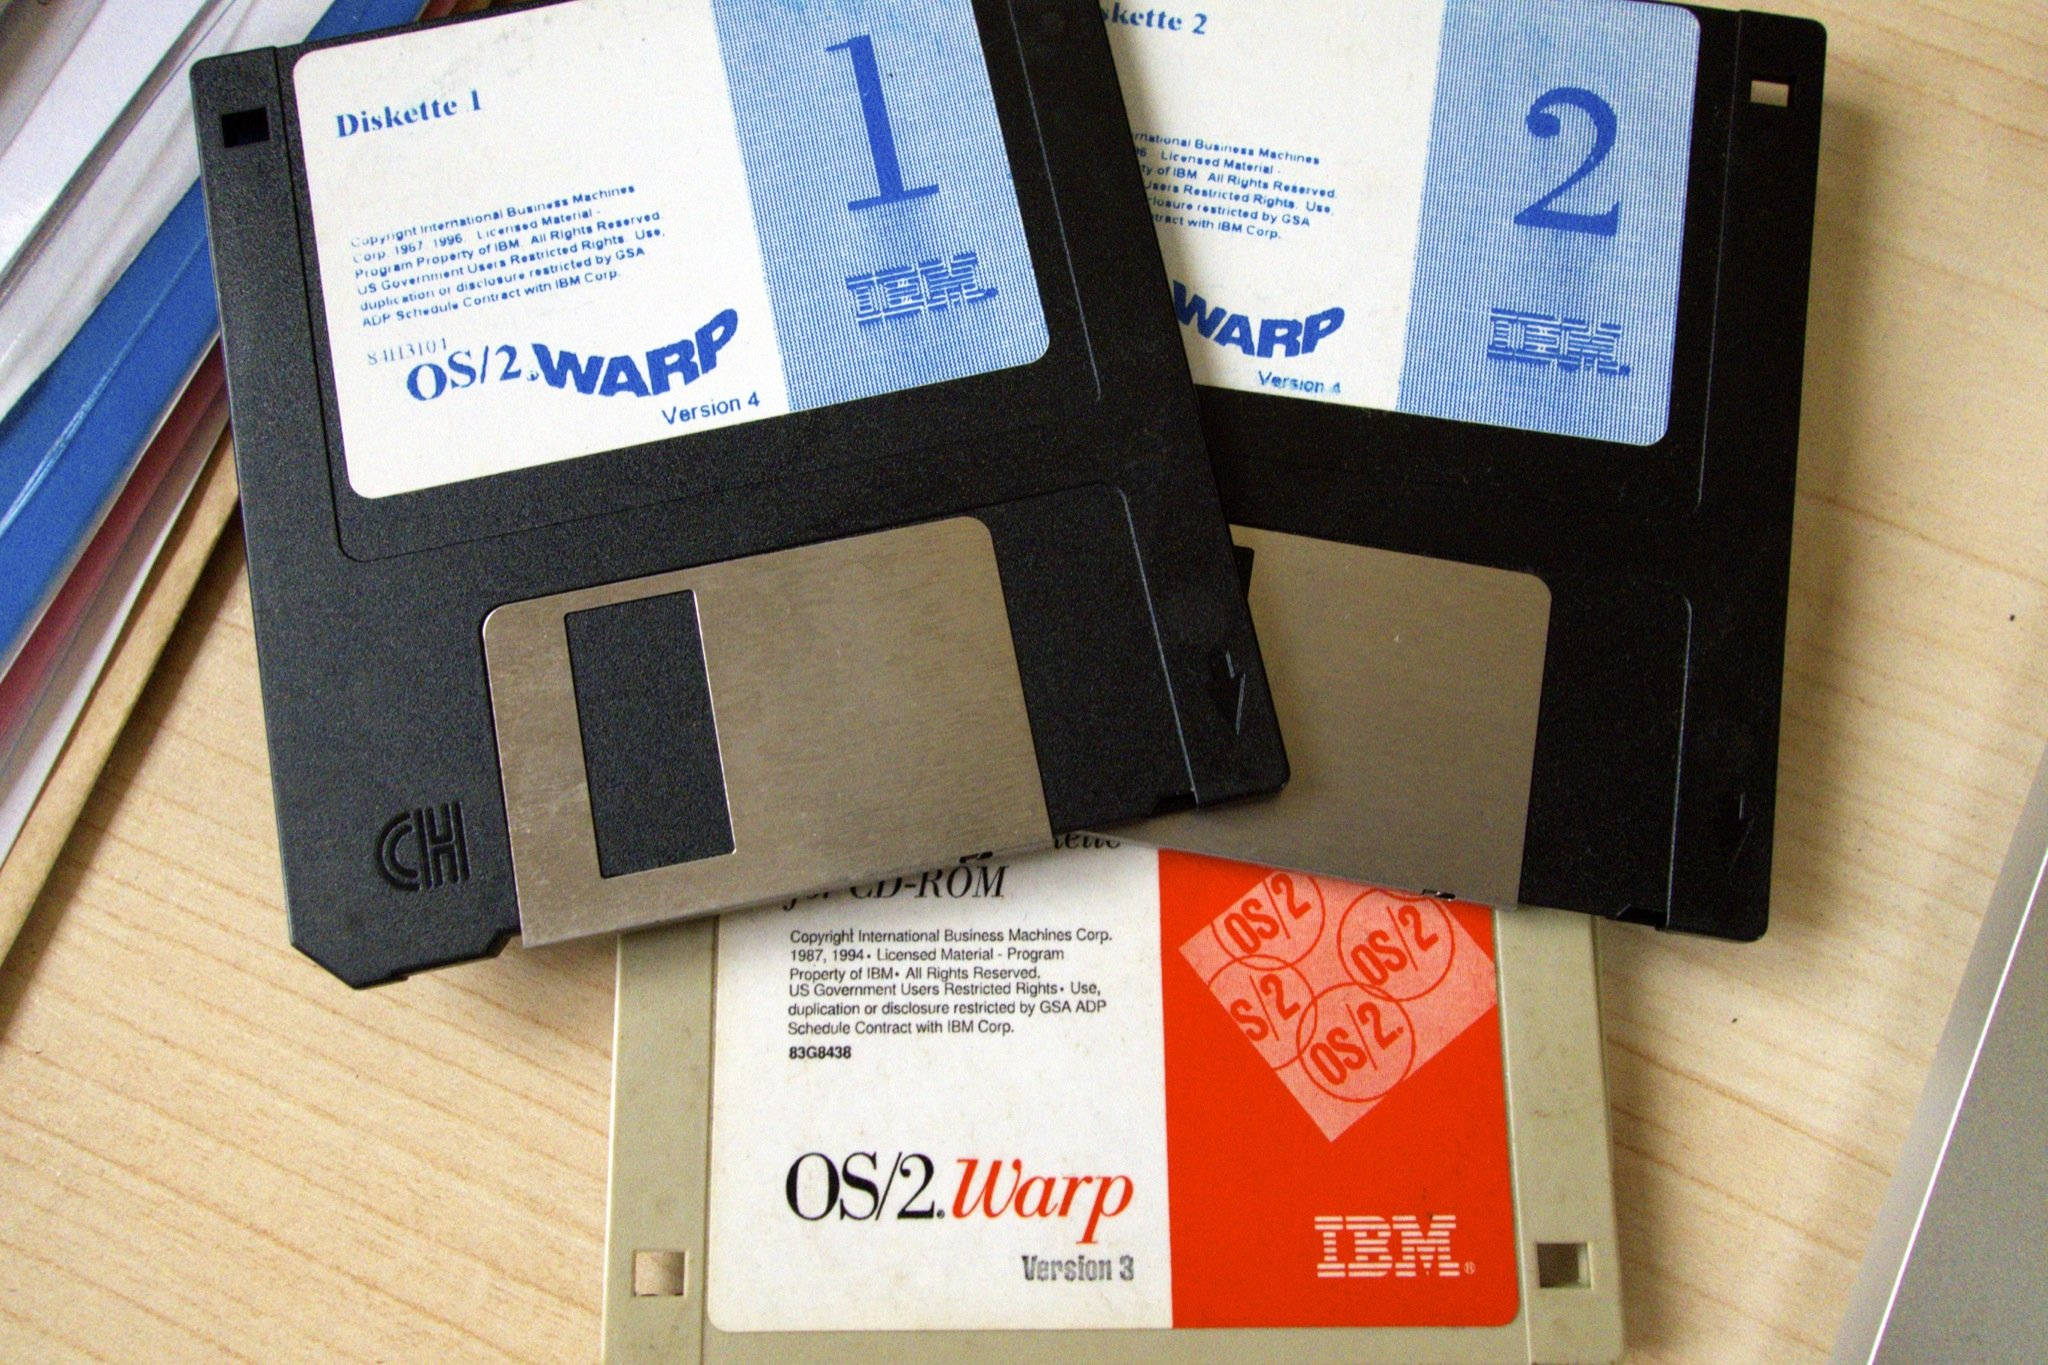 Operating Systems From The 1990s